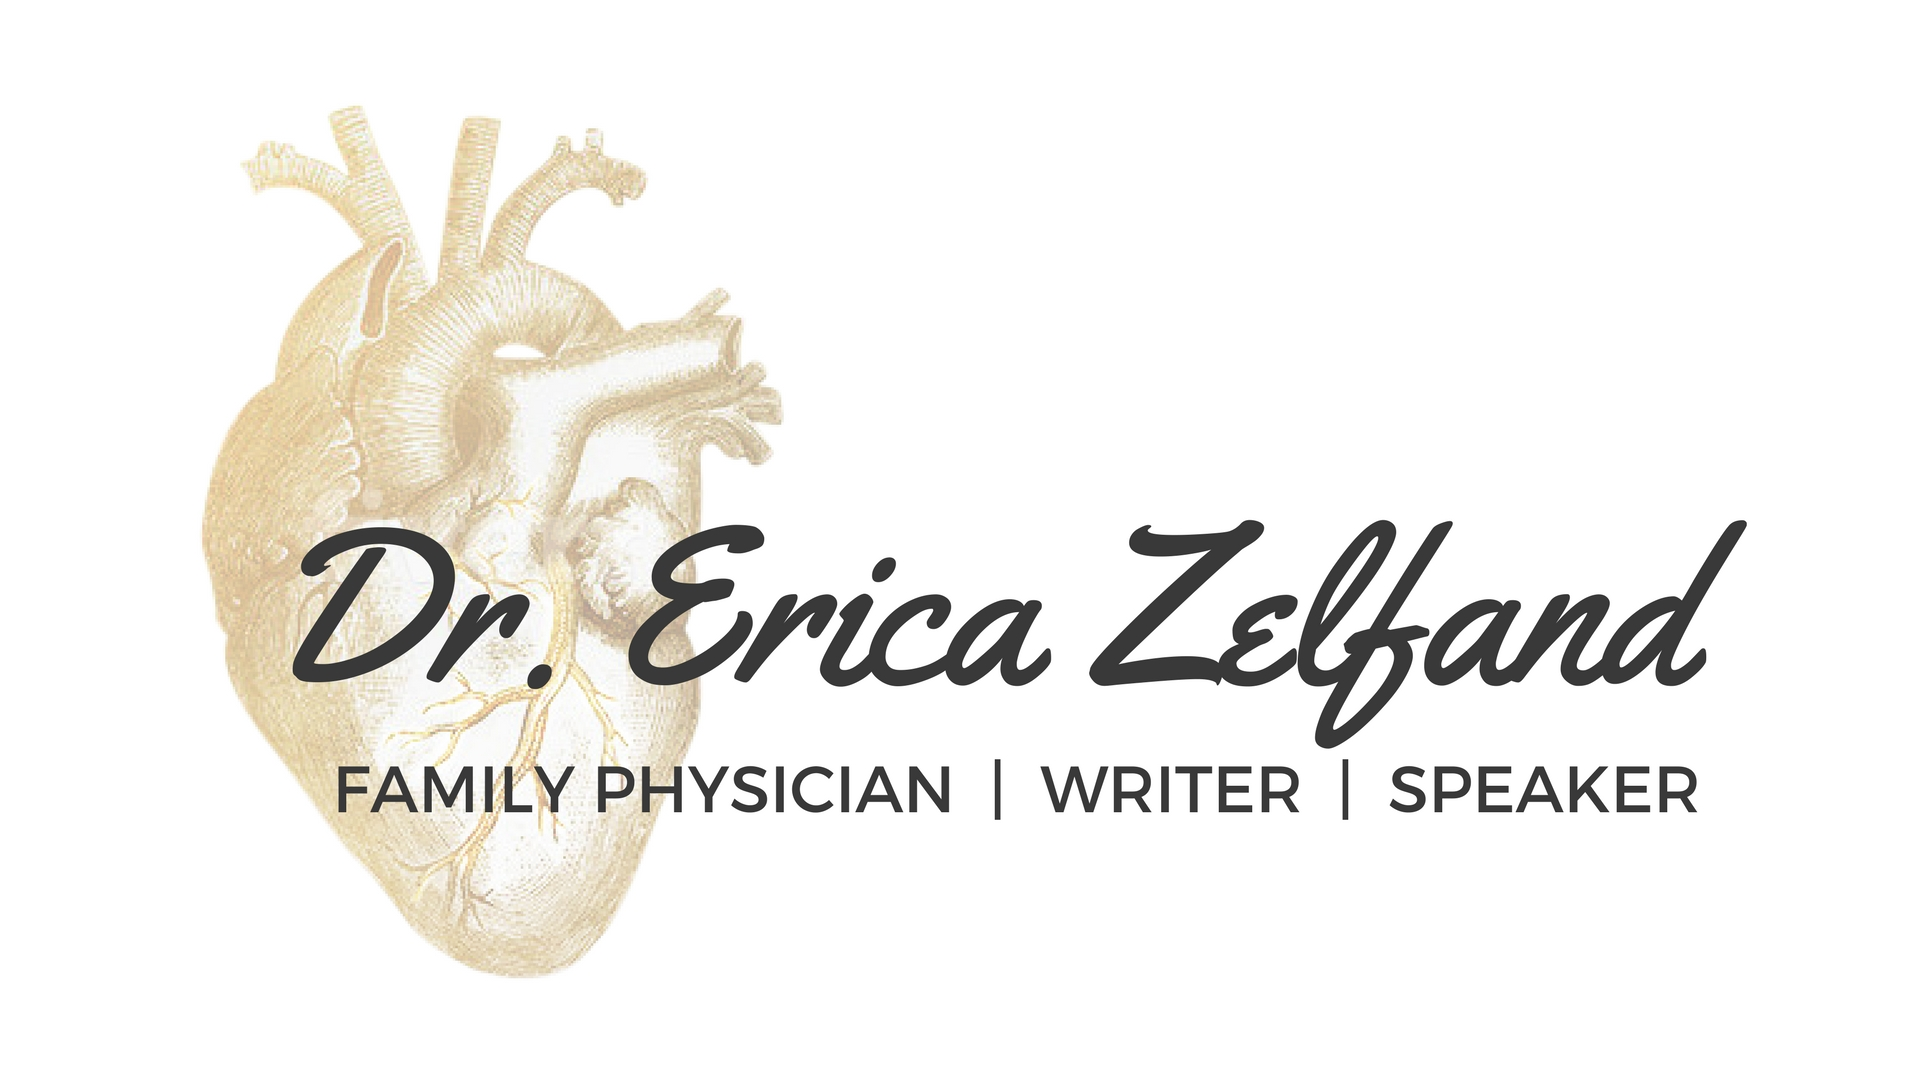 Dr.Z is an integrative and functional medicine physician specializing in hormones, digestive disorders, autoimmune diseases, pediatrics, & preventative medicine.